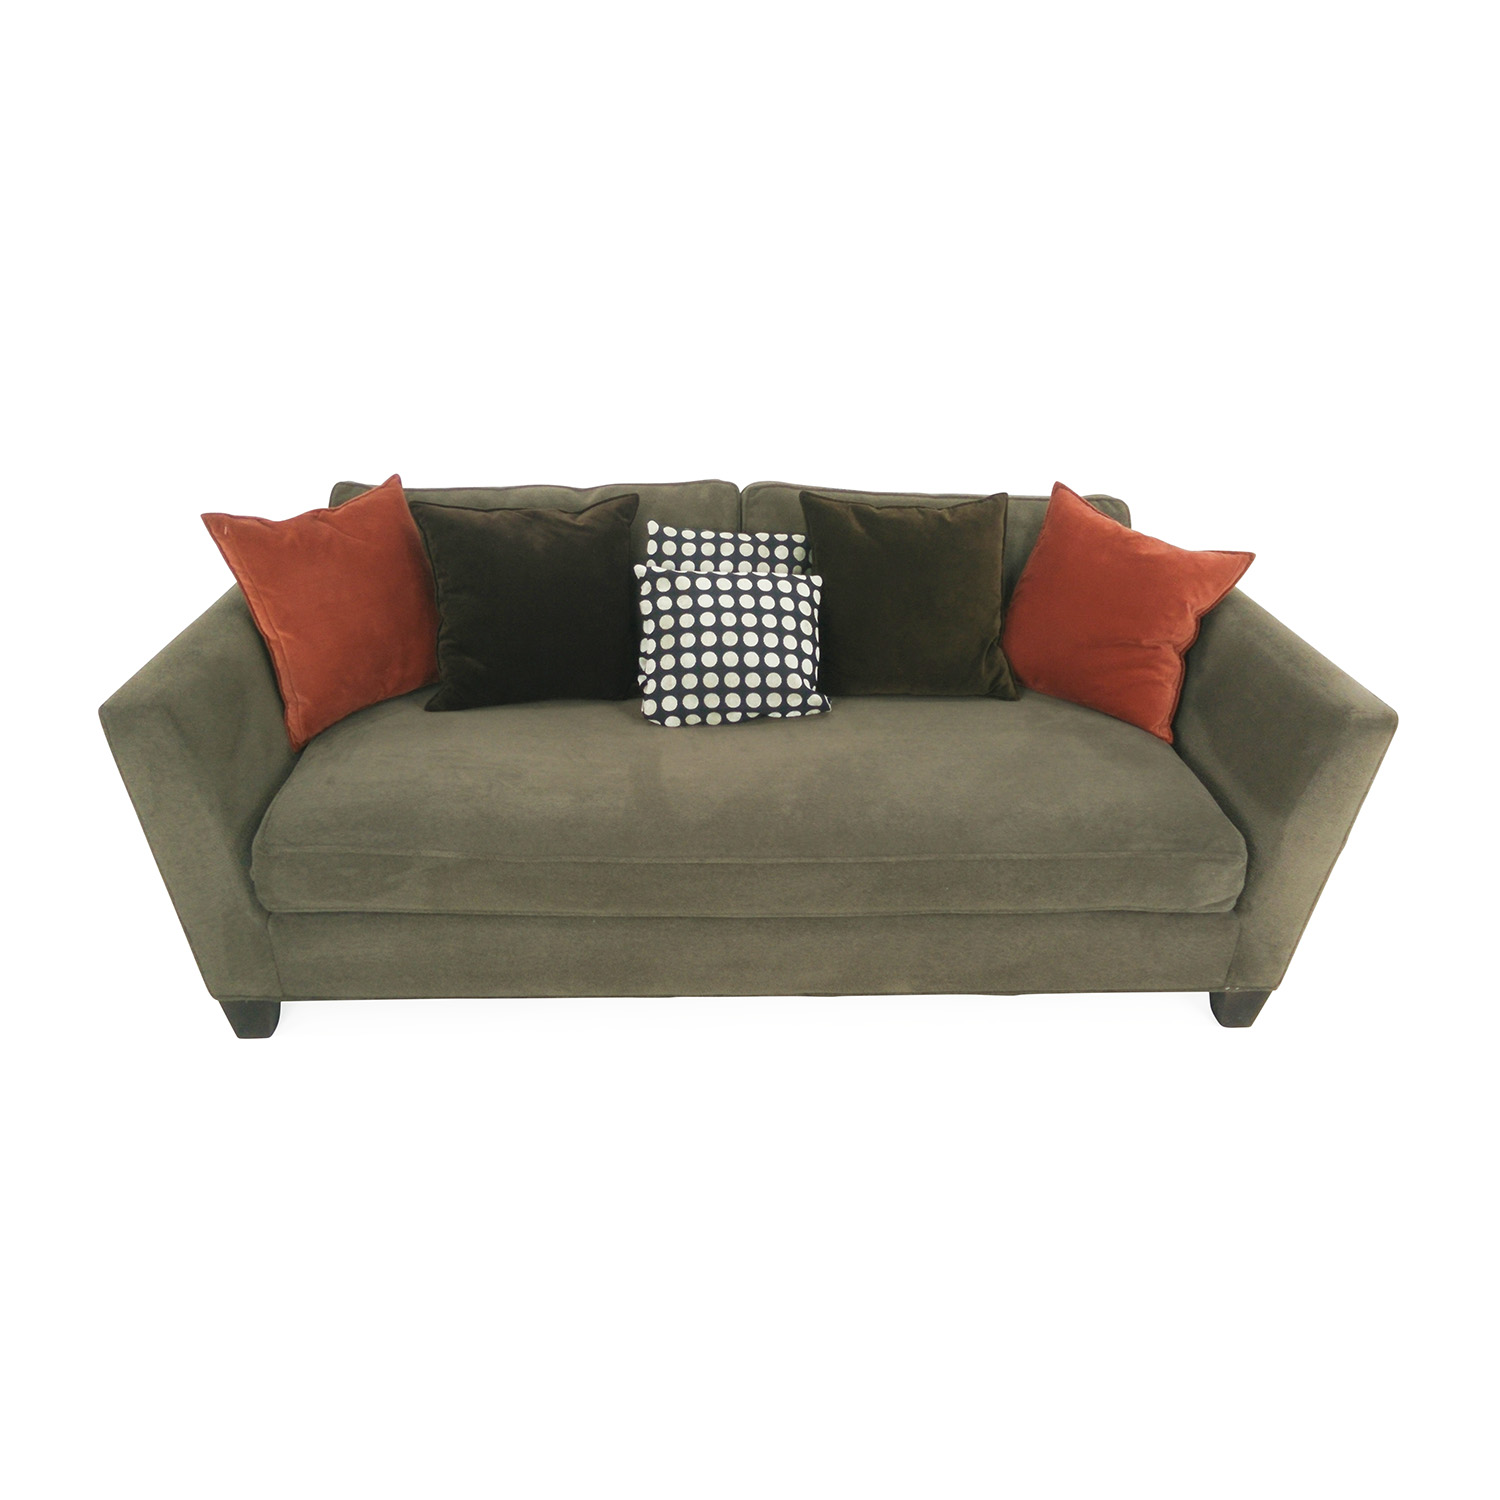 ... Sofas; Crate And Barrel Crate And Barrel Marlowe Daybed Price ...